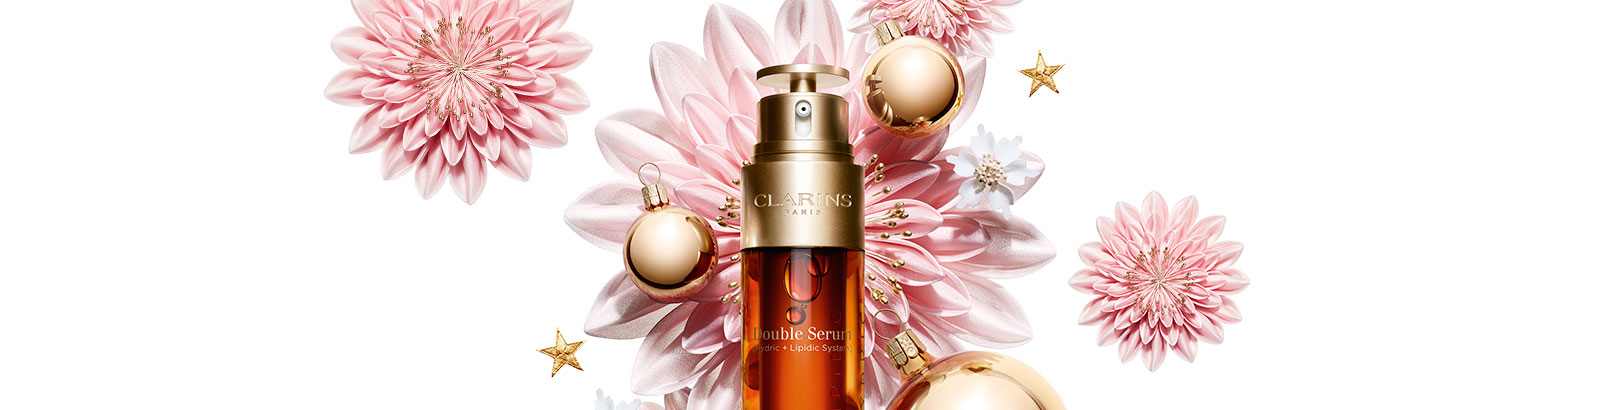 Only the best for your skin. Get glowing complexion this holiday season